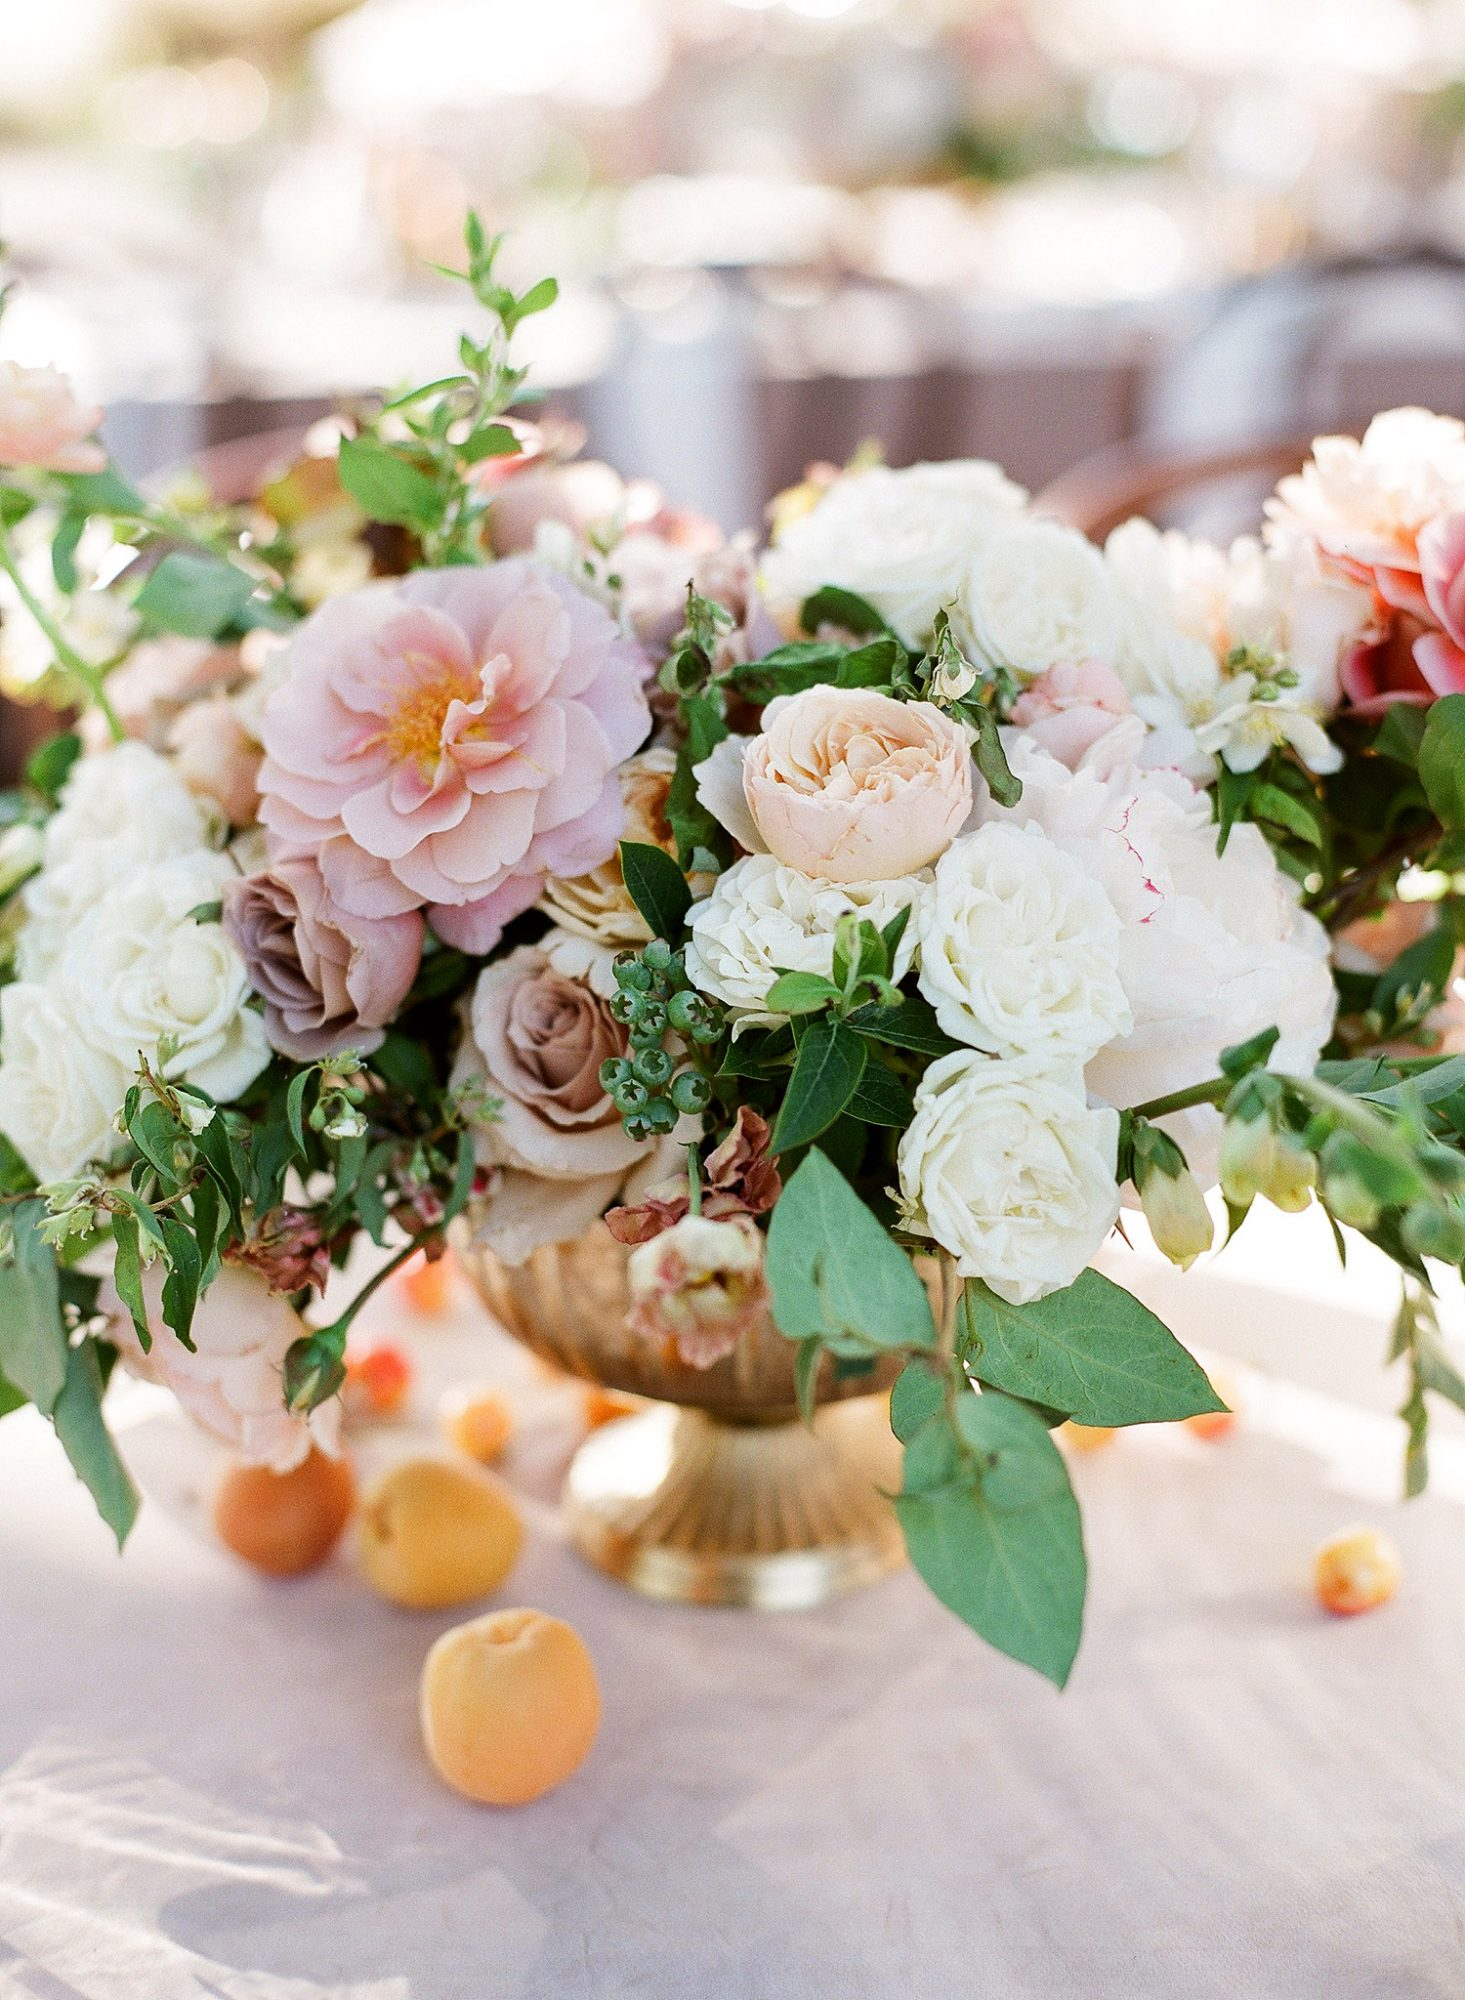 tamara erik wedding reception centerpieces